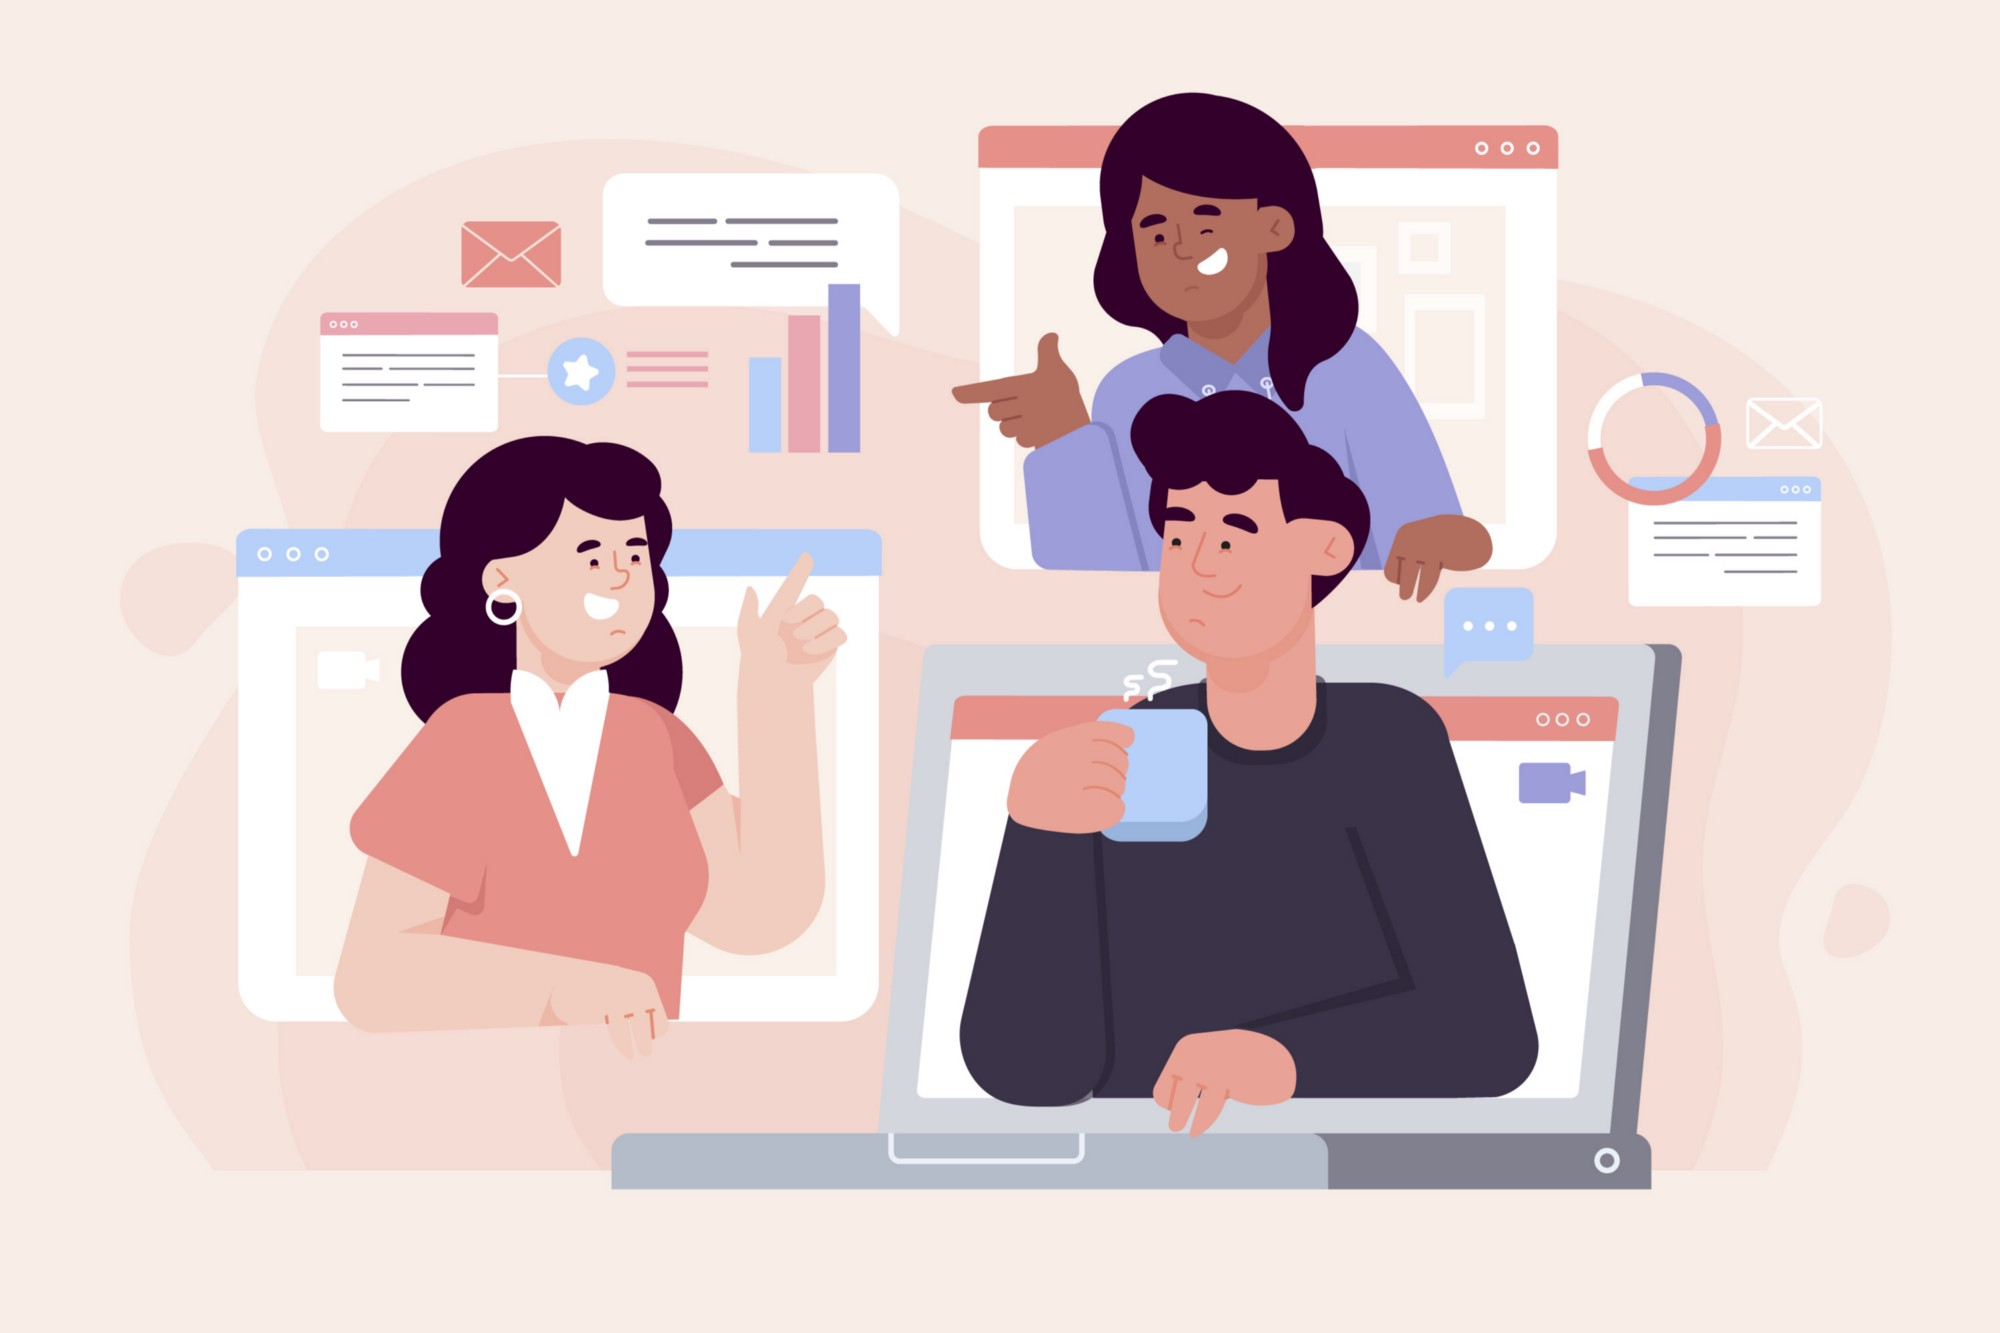 An illustration of three people working from behind screens happily. With some charts and chatboxes hovering around.